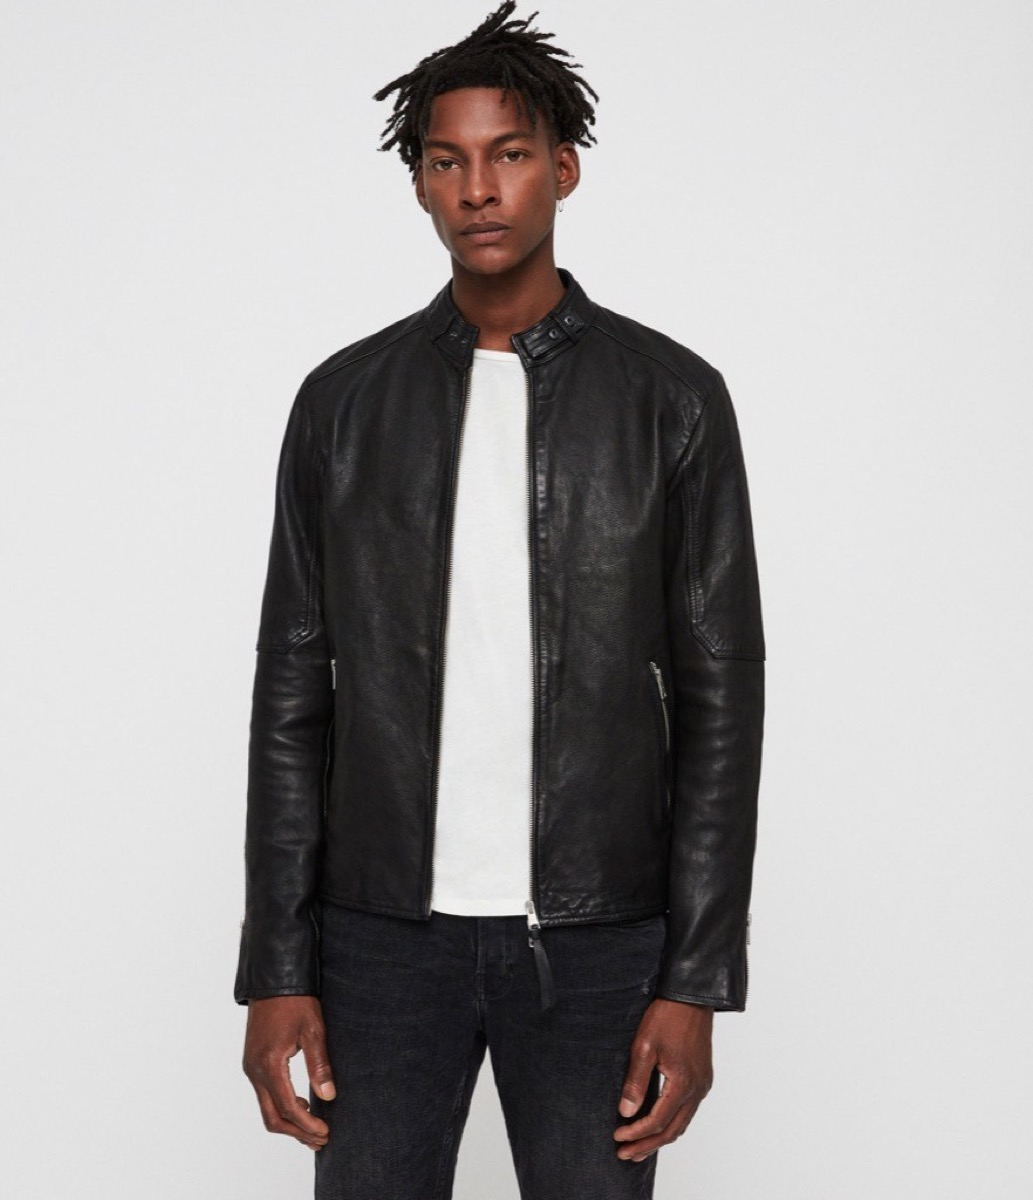 young black man in black leather jacket